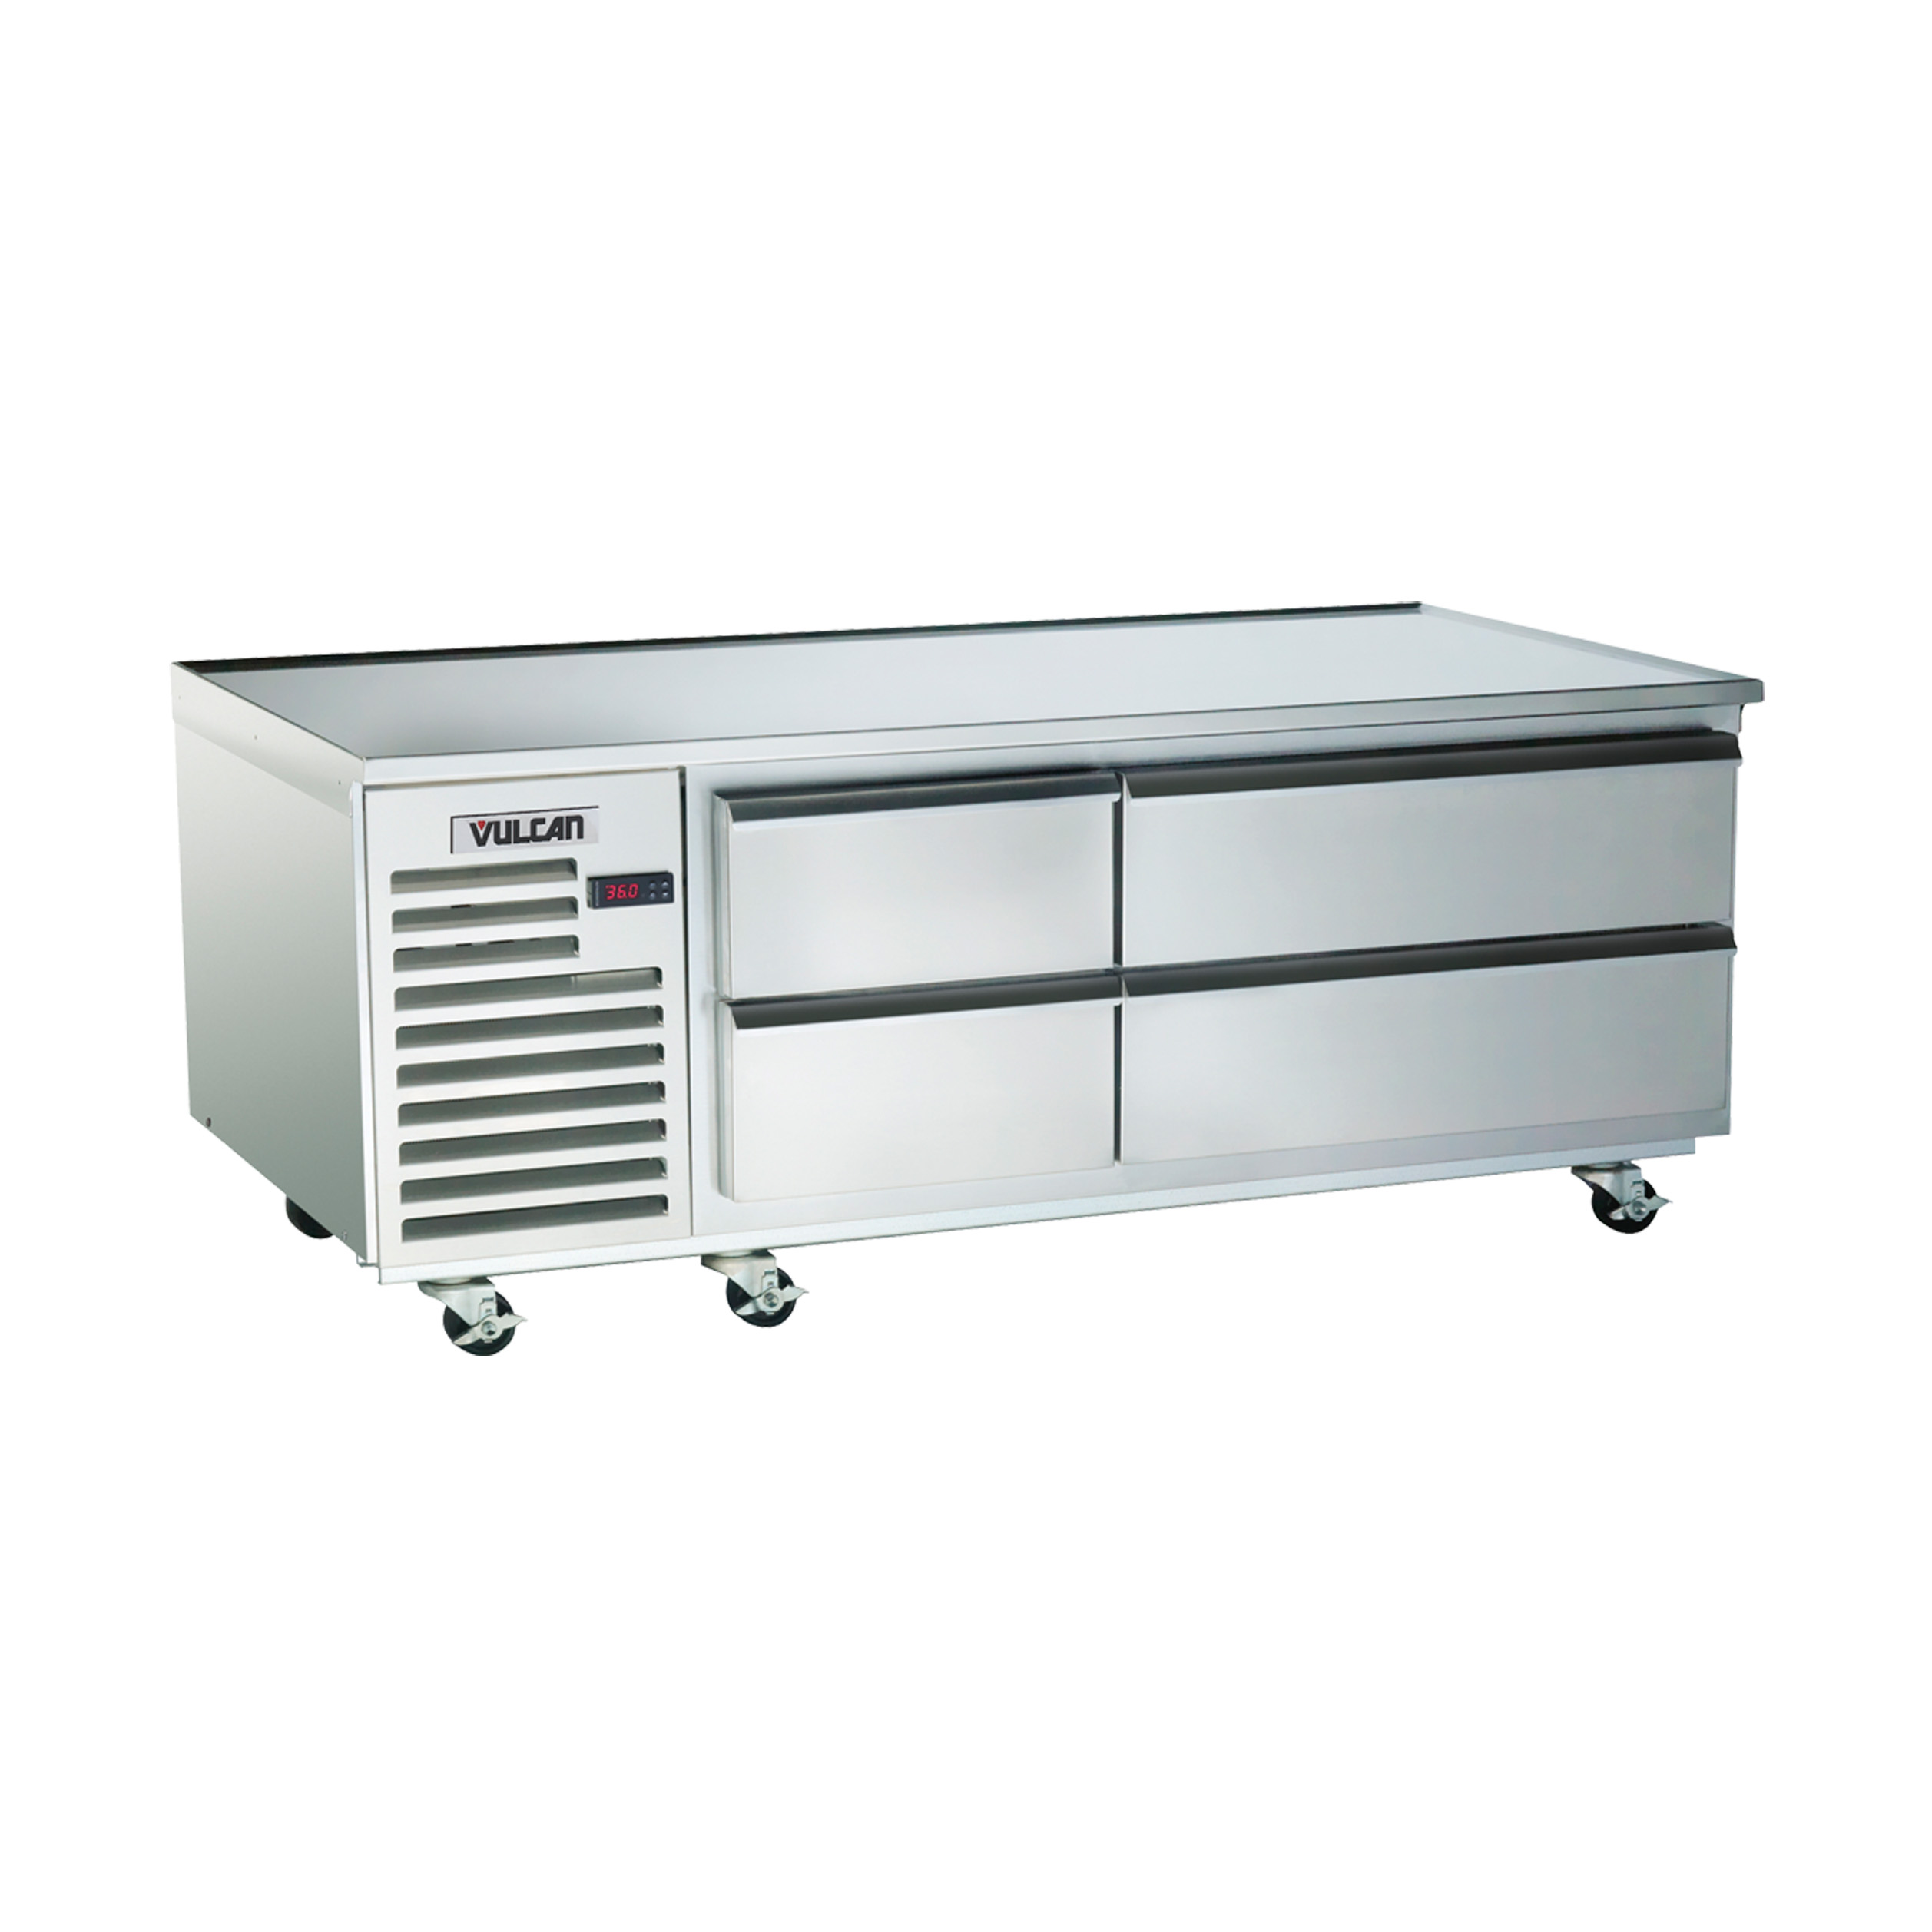 Vulcan VSC48 equipment stand, refrigerated base